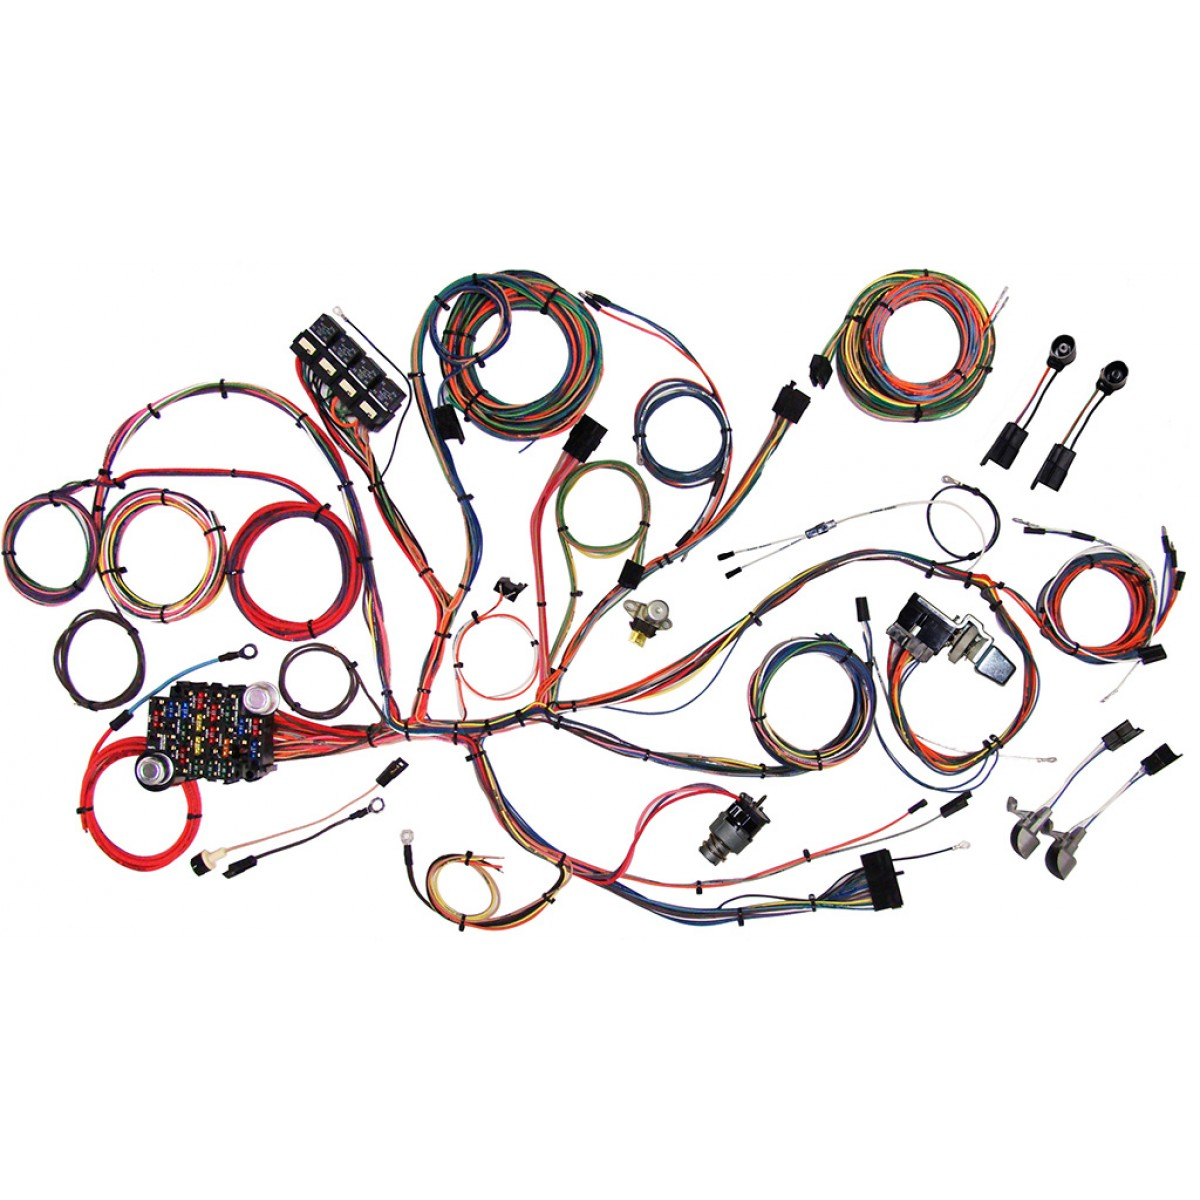 1964 1966 ford mustang wire harness complete wiring harness kit complete wiring harness kit 1964 1966 ford mustang part 510125